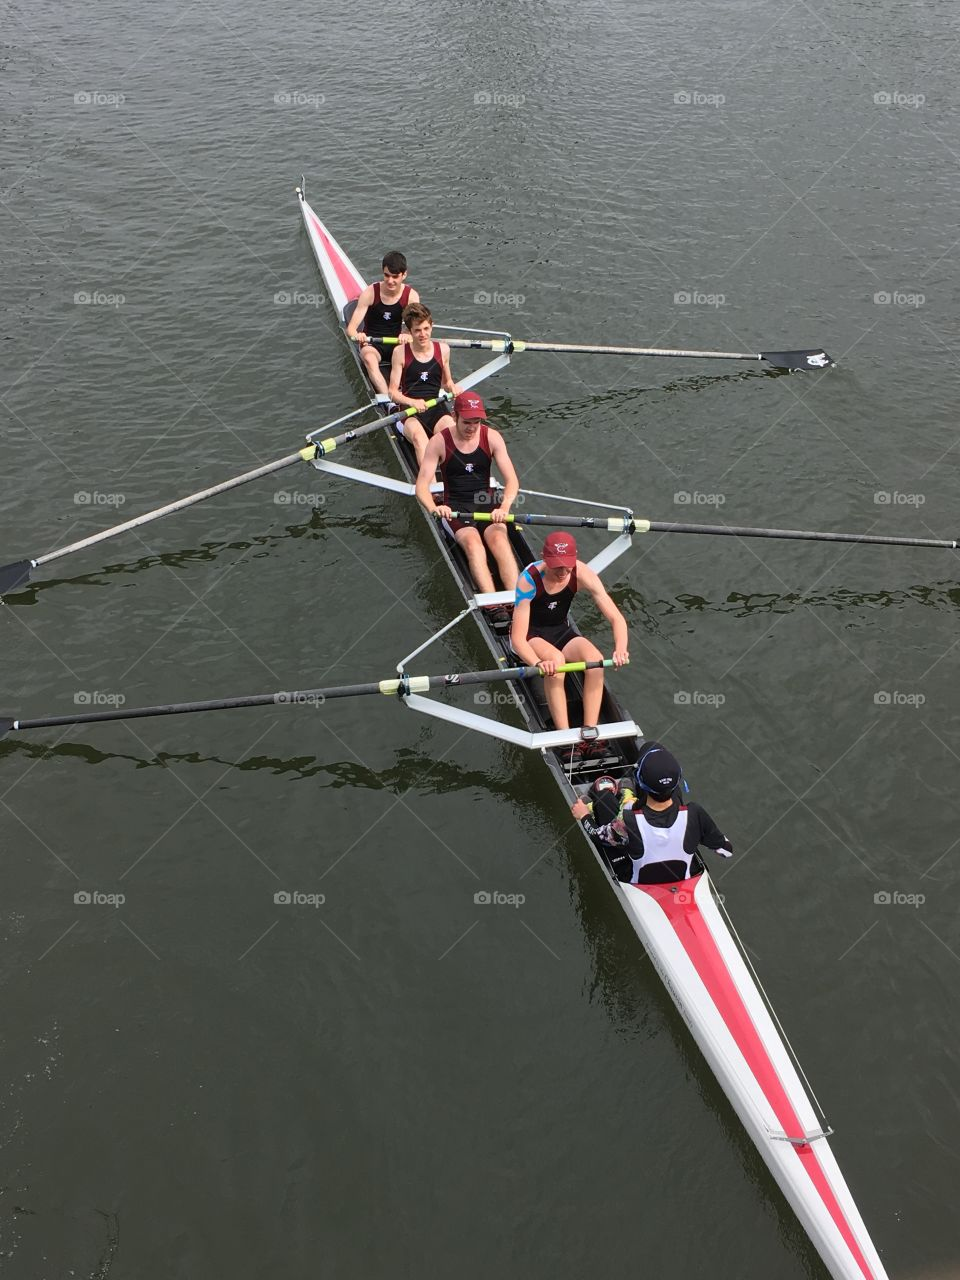 Rowing pictures really good Buy them